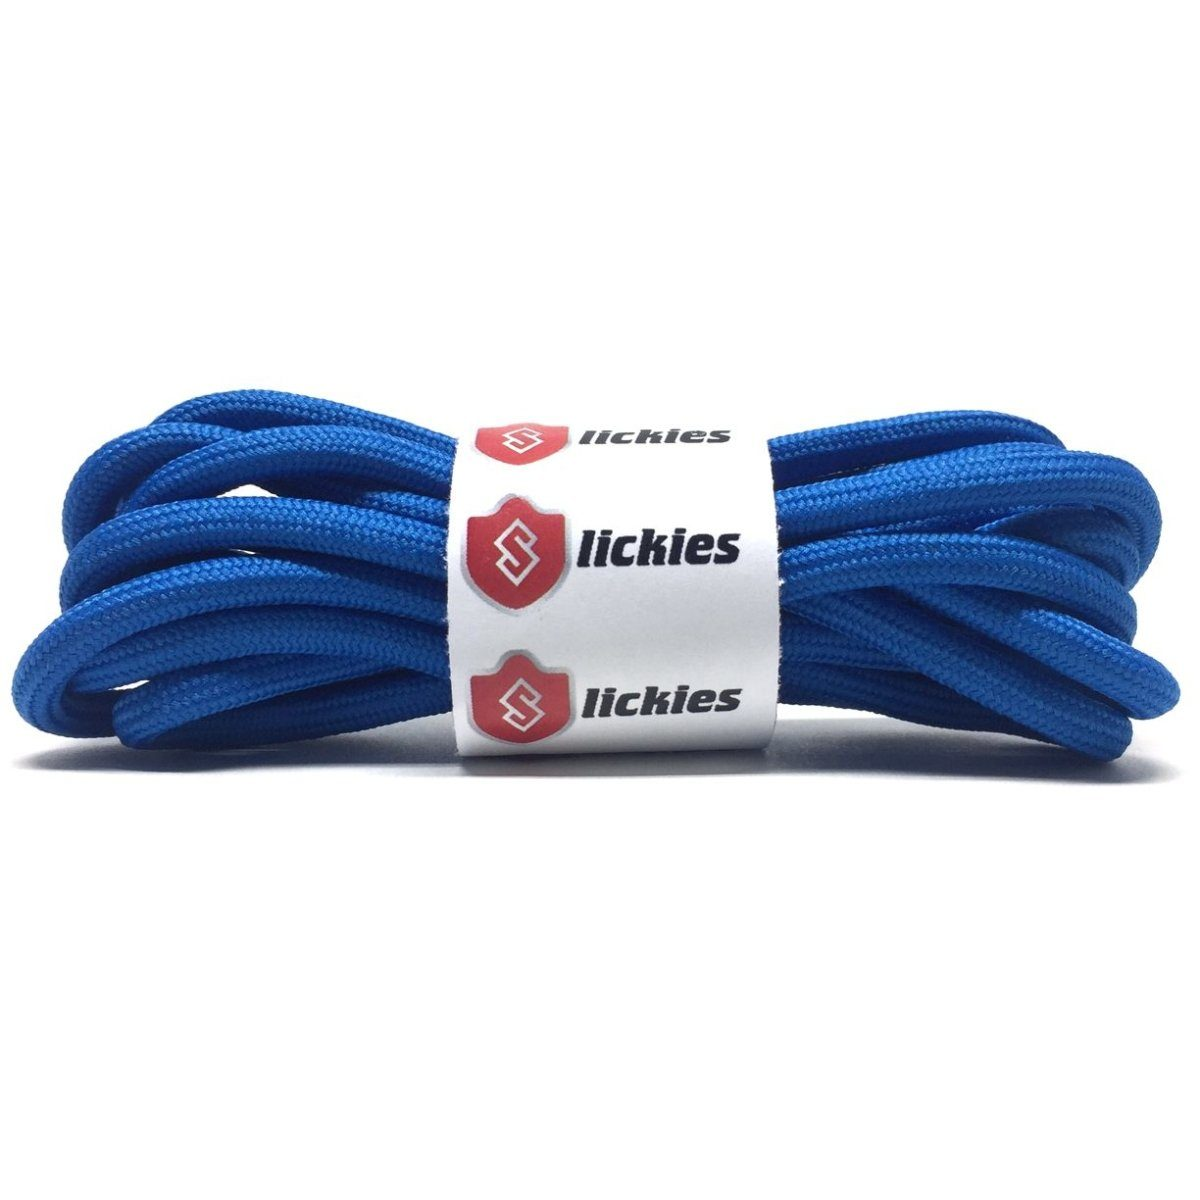 Rope Laces - BASICS Rope Laces - Blue